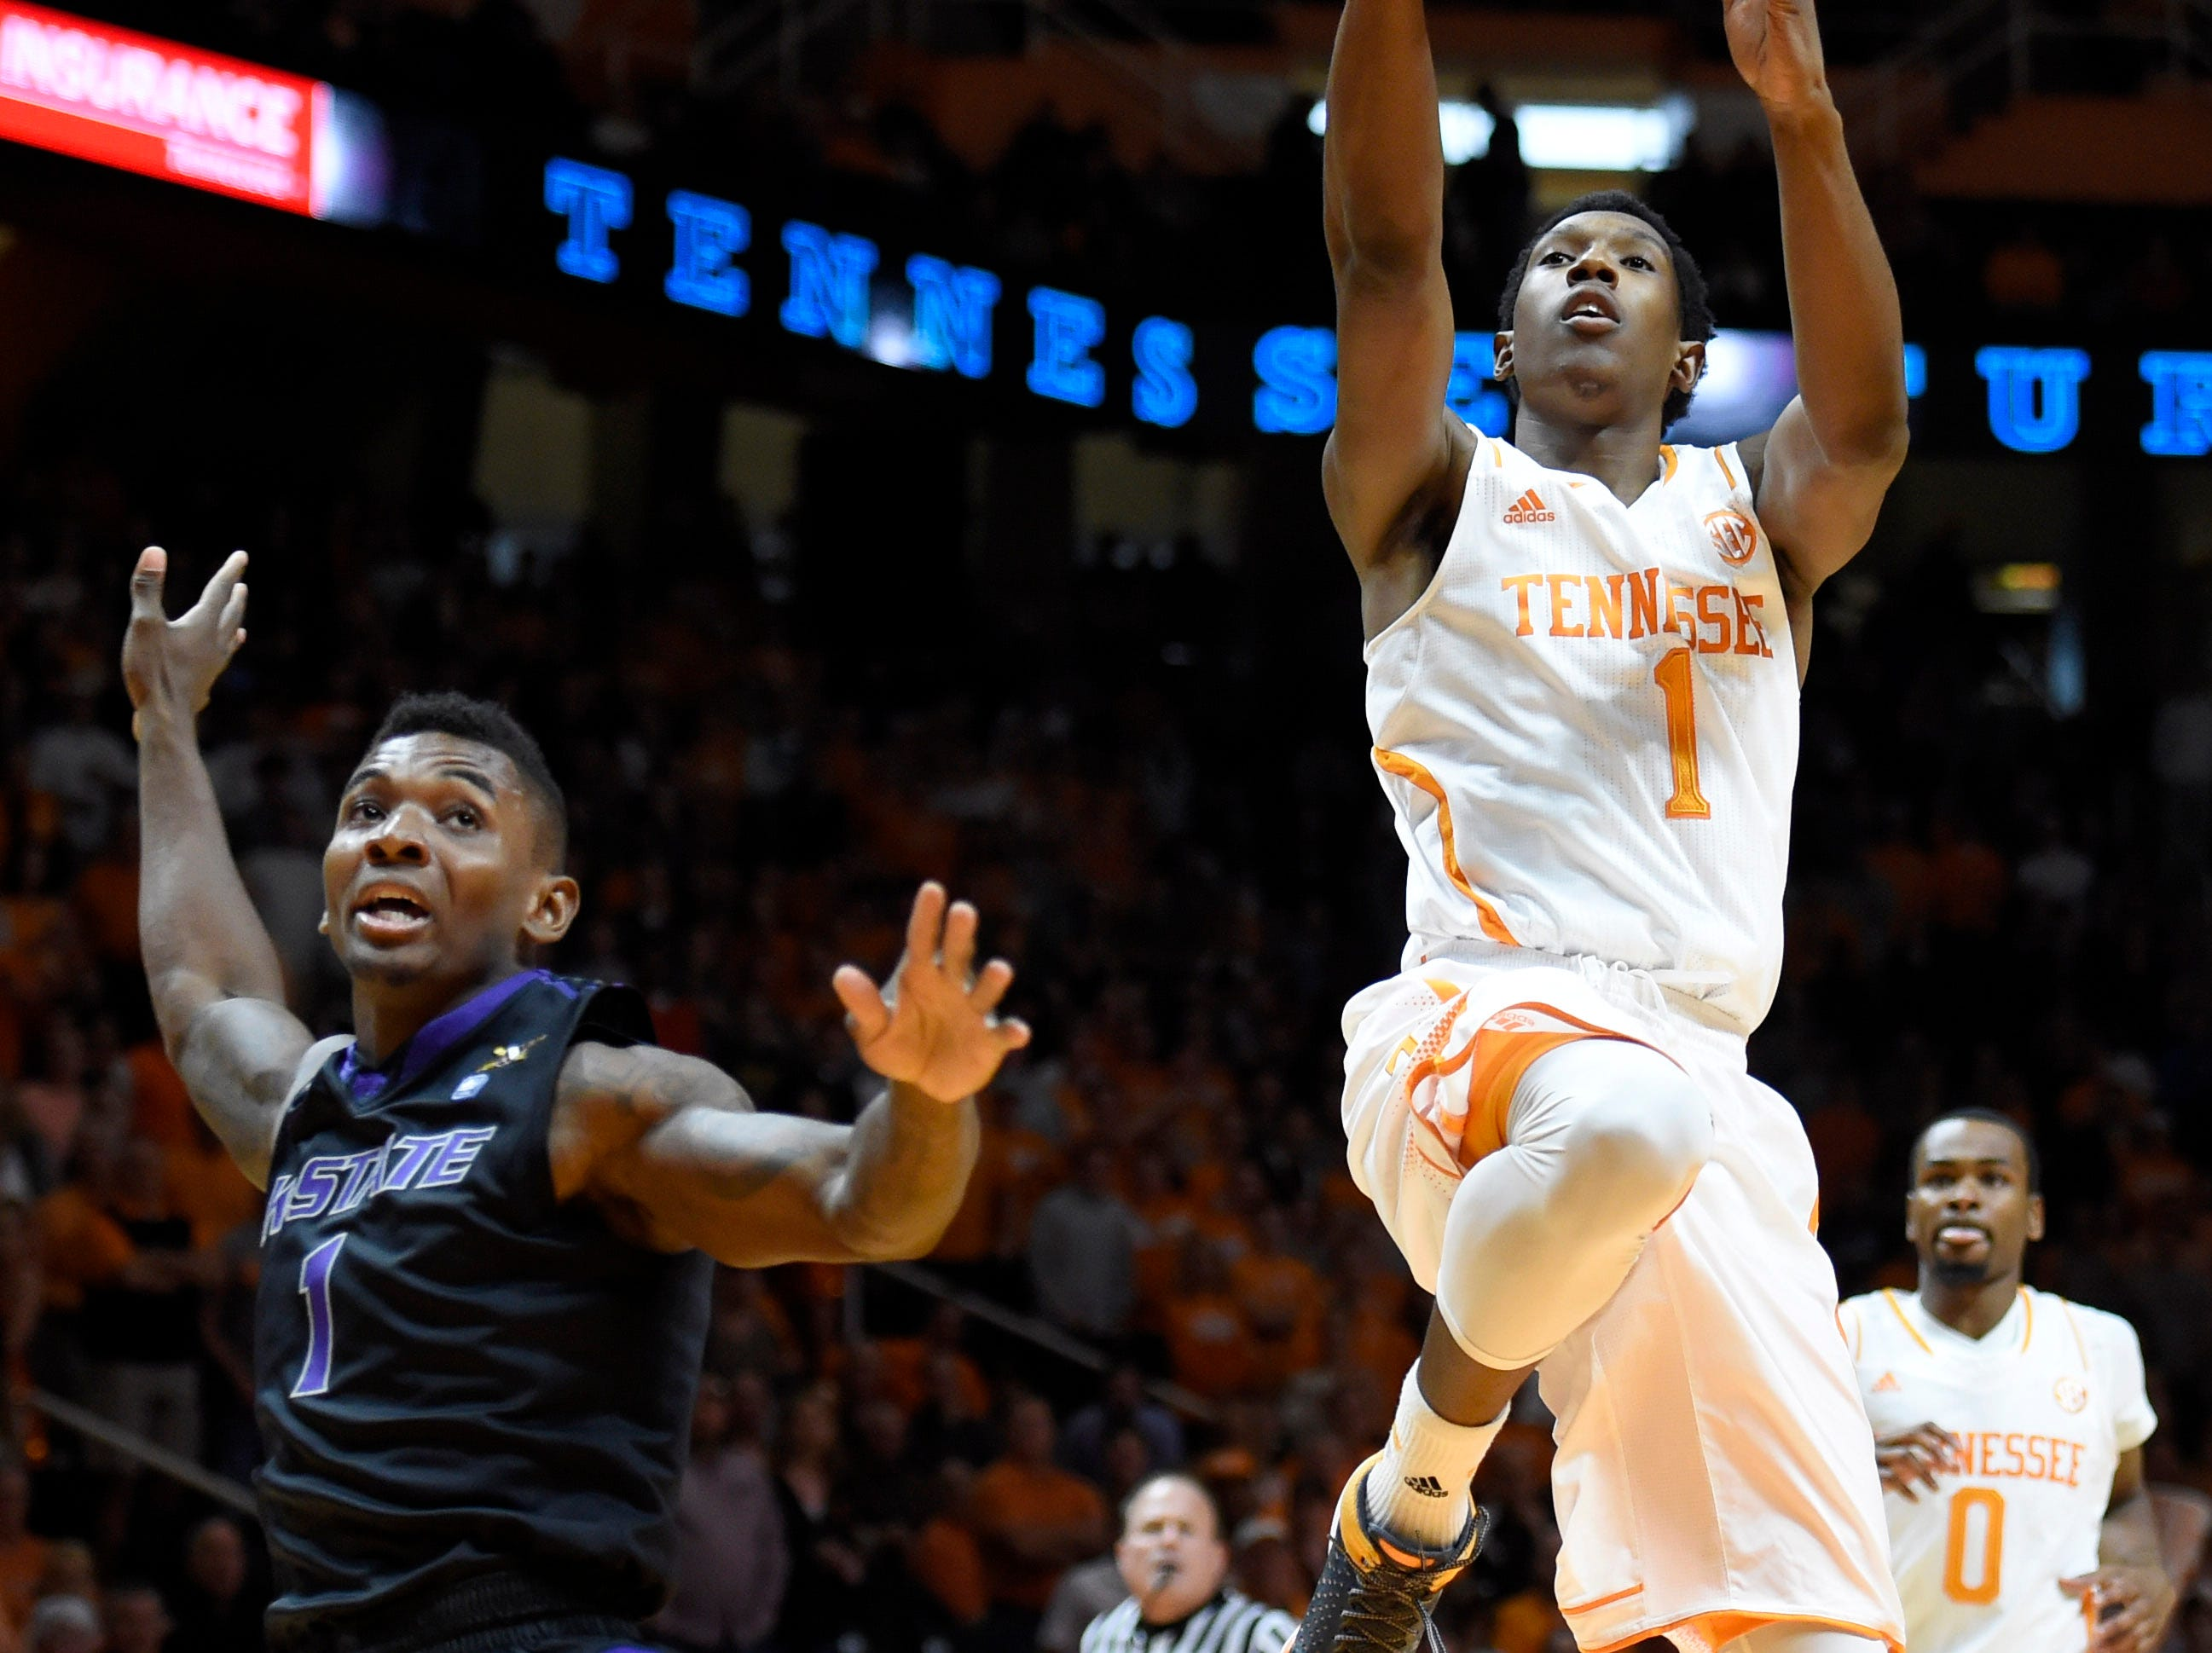 Tennessee guard Josh Richardson (1) drives to the basket past Kansas State guard Jevon Thomas (1) during their NCAA college basketball game at Thompson-Boling Arena in Knoxville, Tenn., Saturday, Dec. 6, 2014.